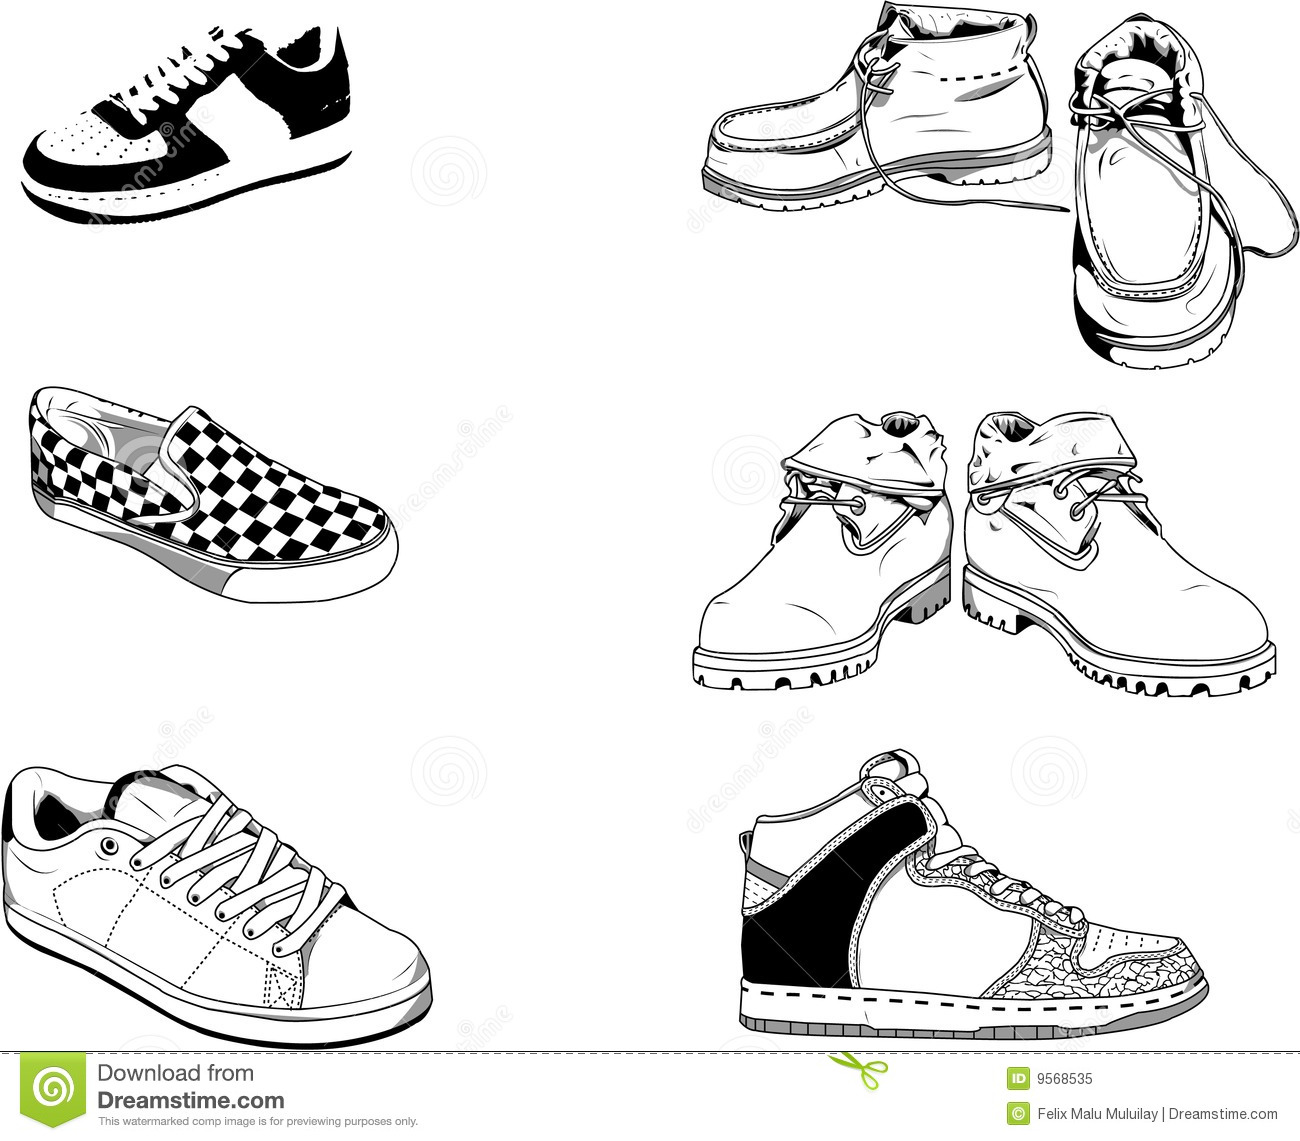 How To Draw Leather Shoes